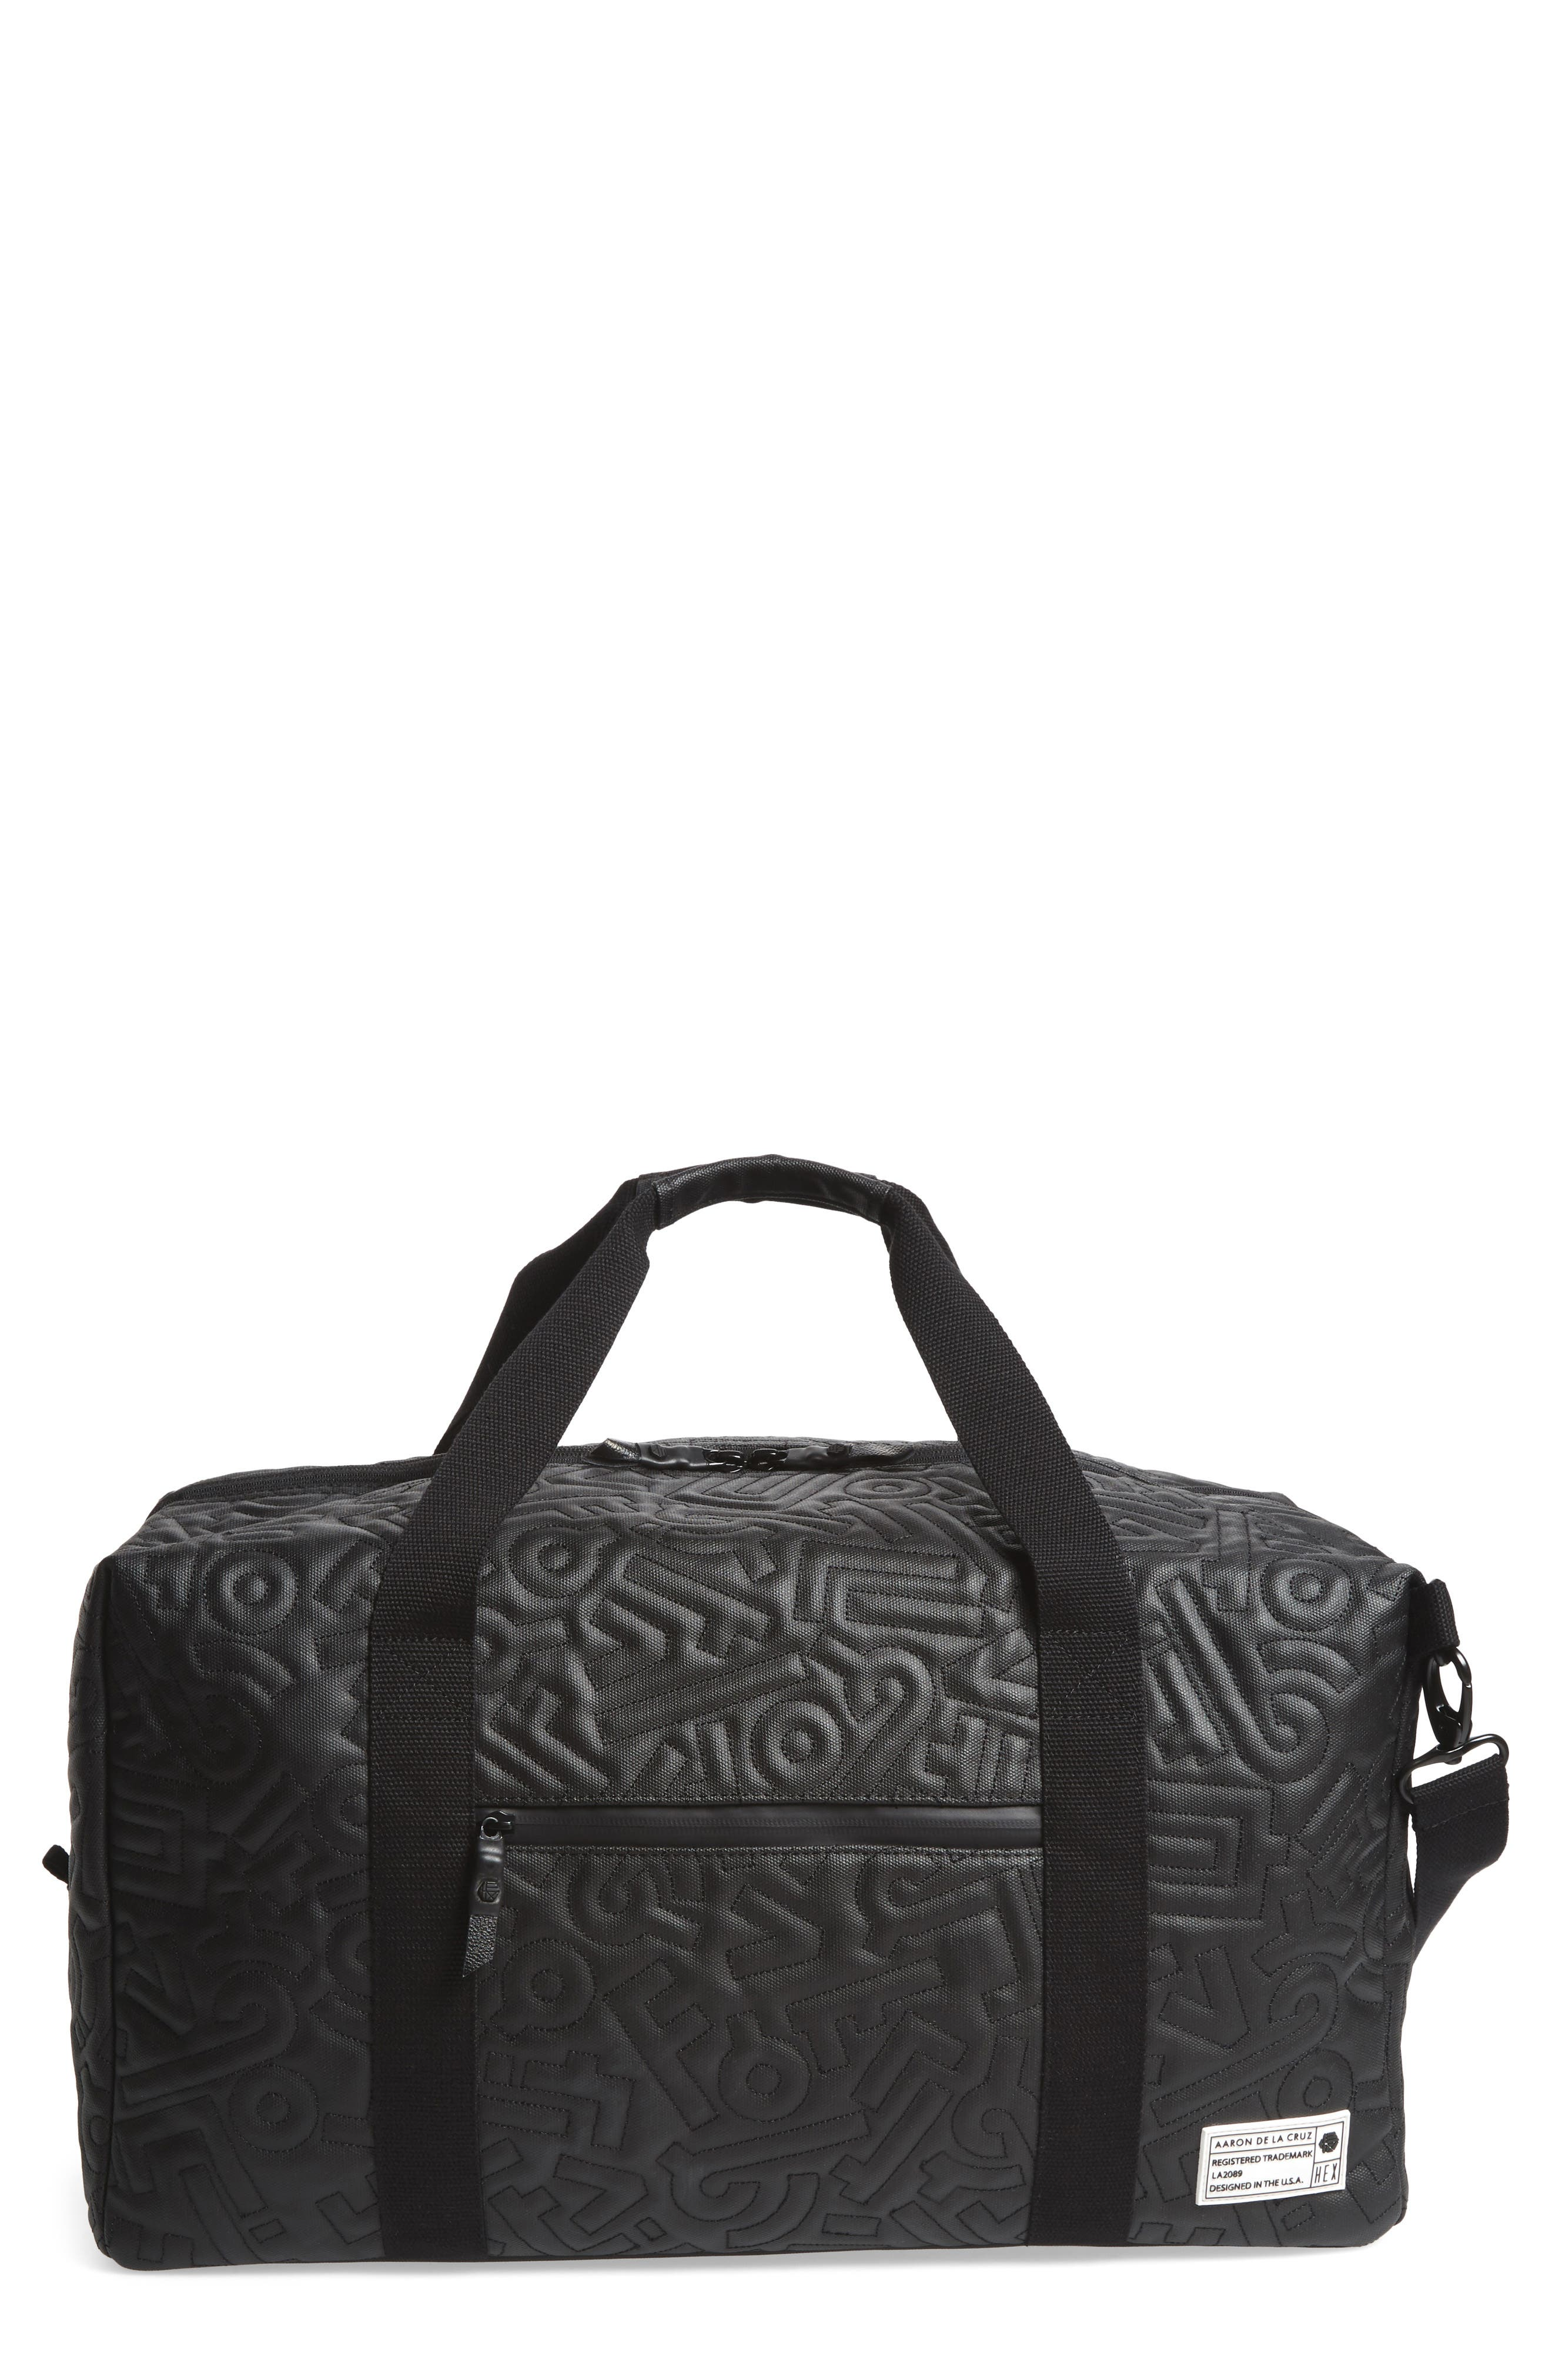 x Aaron De La Cruz Drifter Duffel Bag,                         Main,                         color, Black Quilt